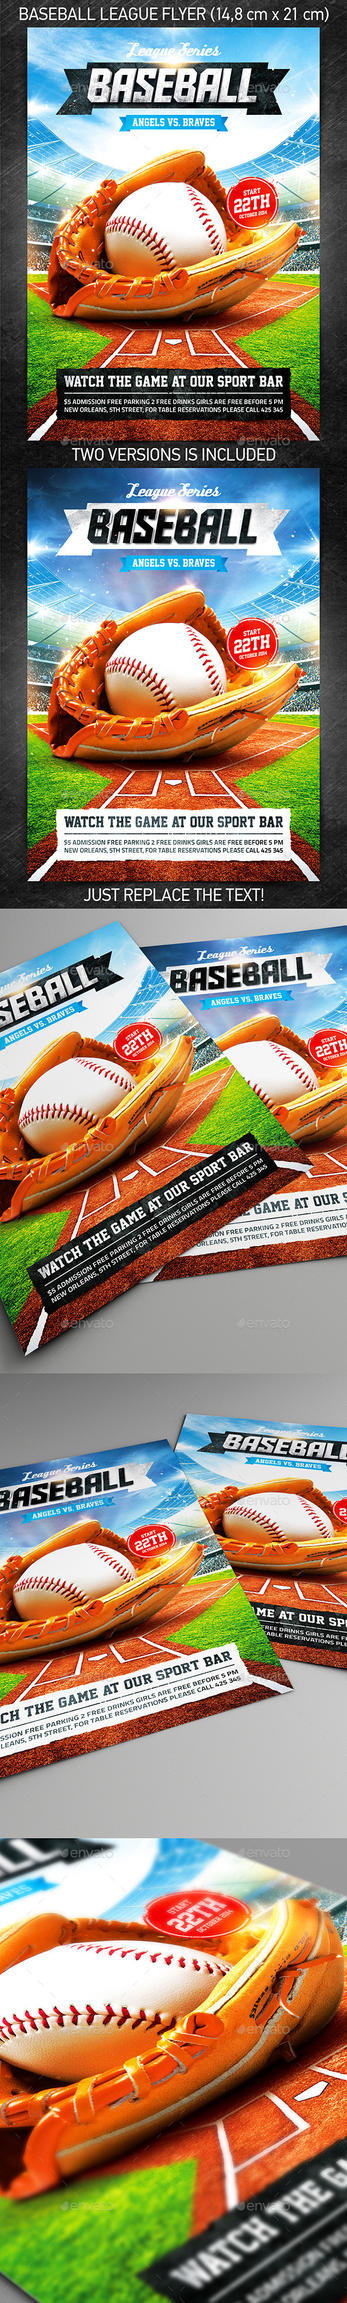 Baseball League Series Flyer, PSD Template by 4ustudio